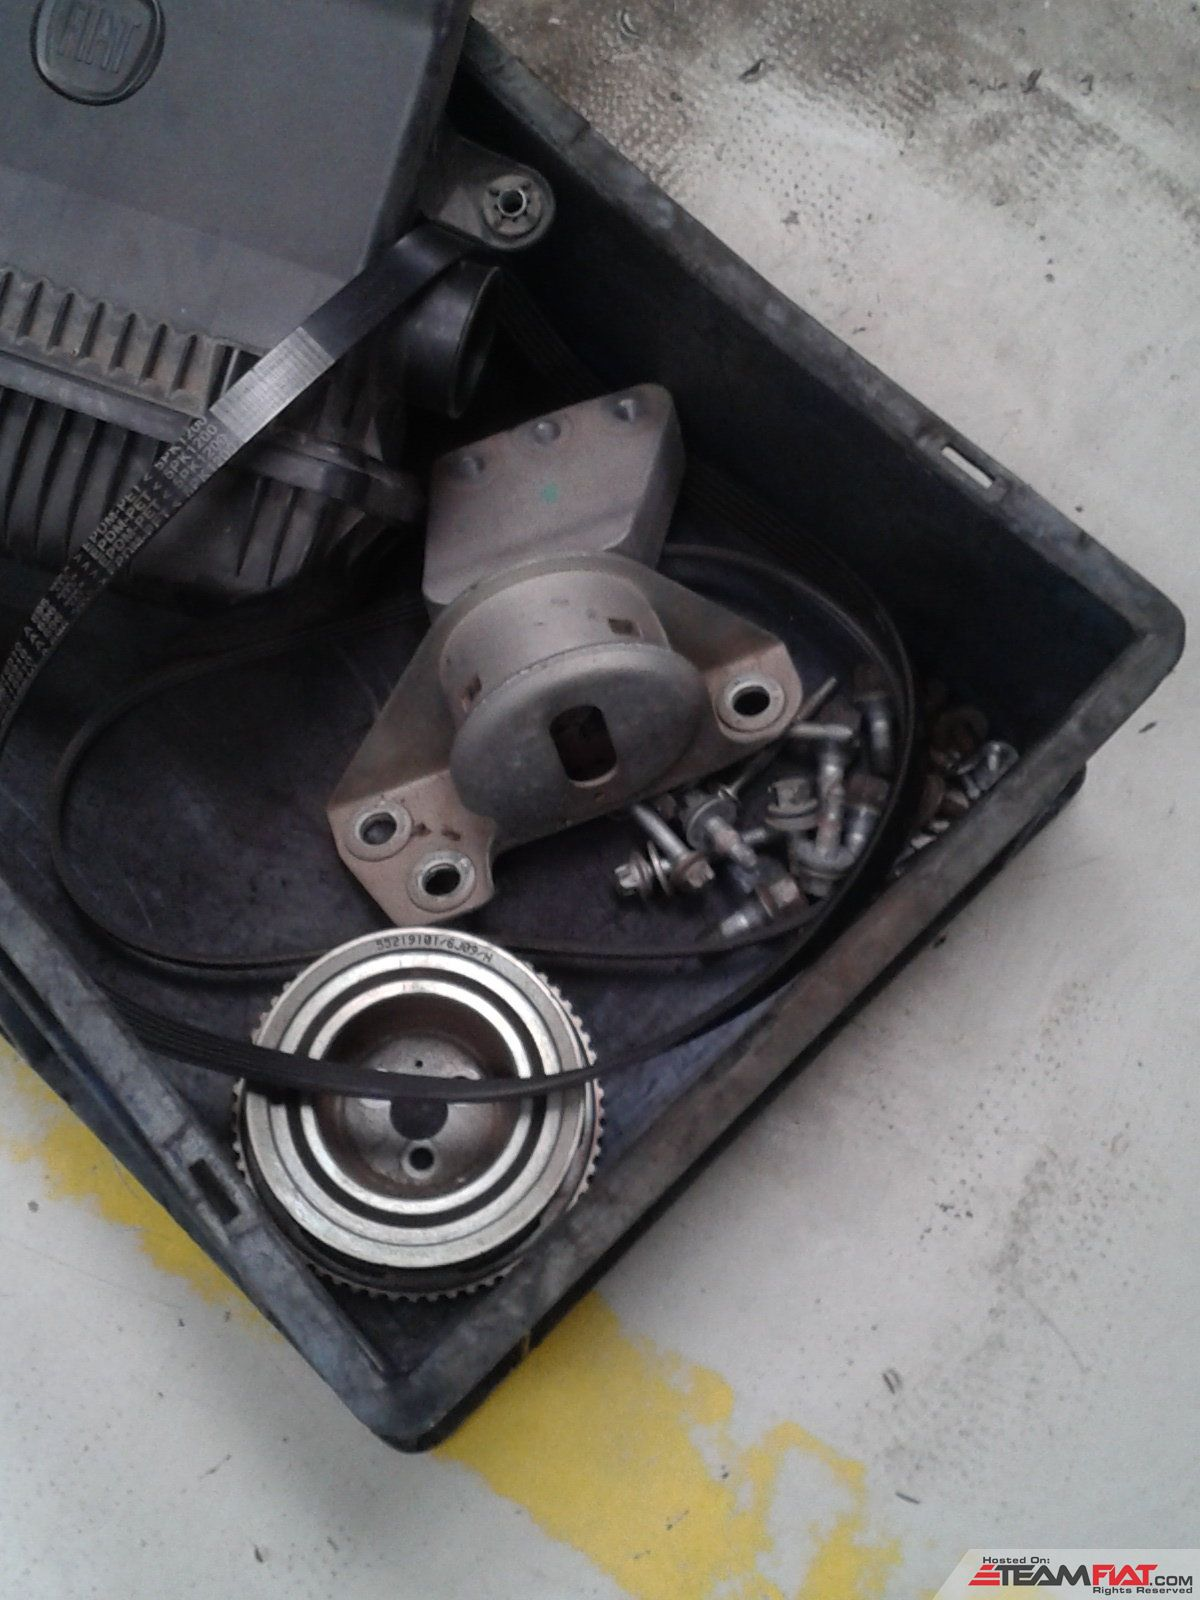 top engine mount removed.jpg